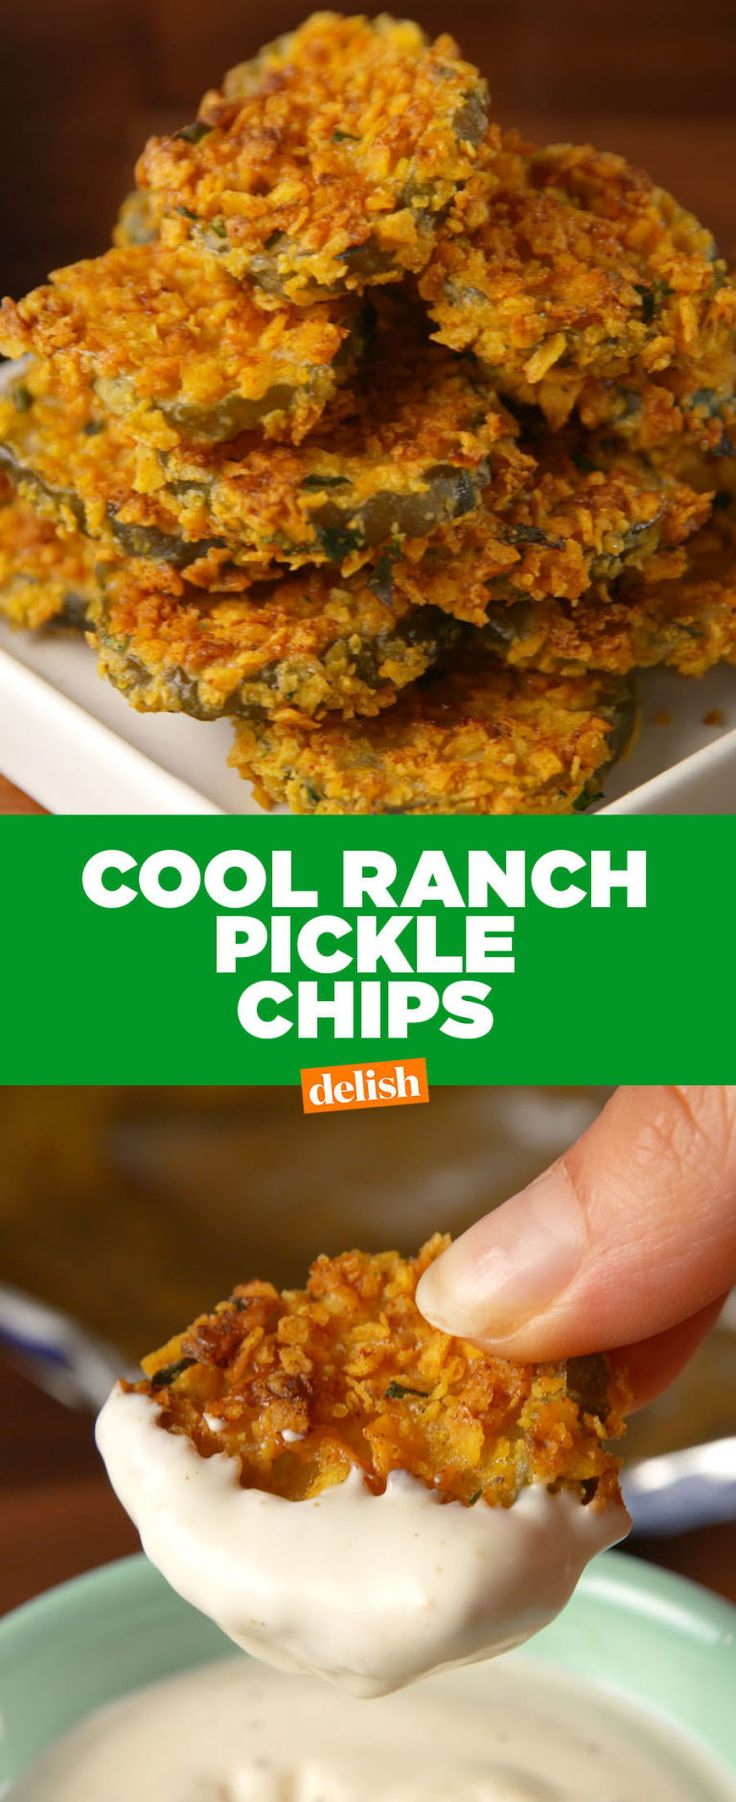 Cool Ranch Pickle Chips